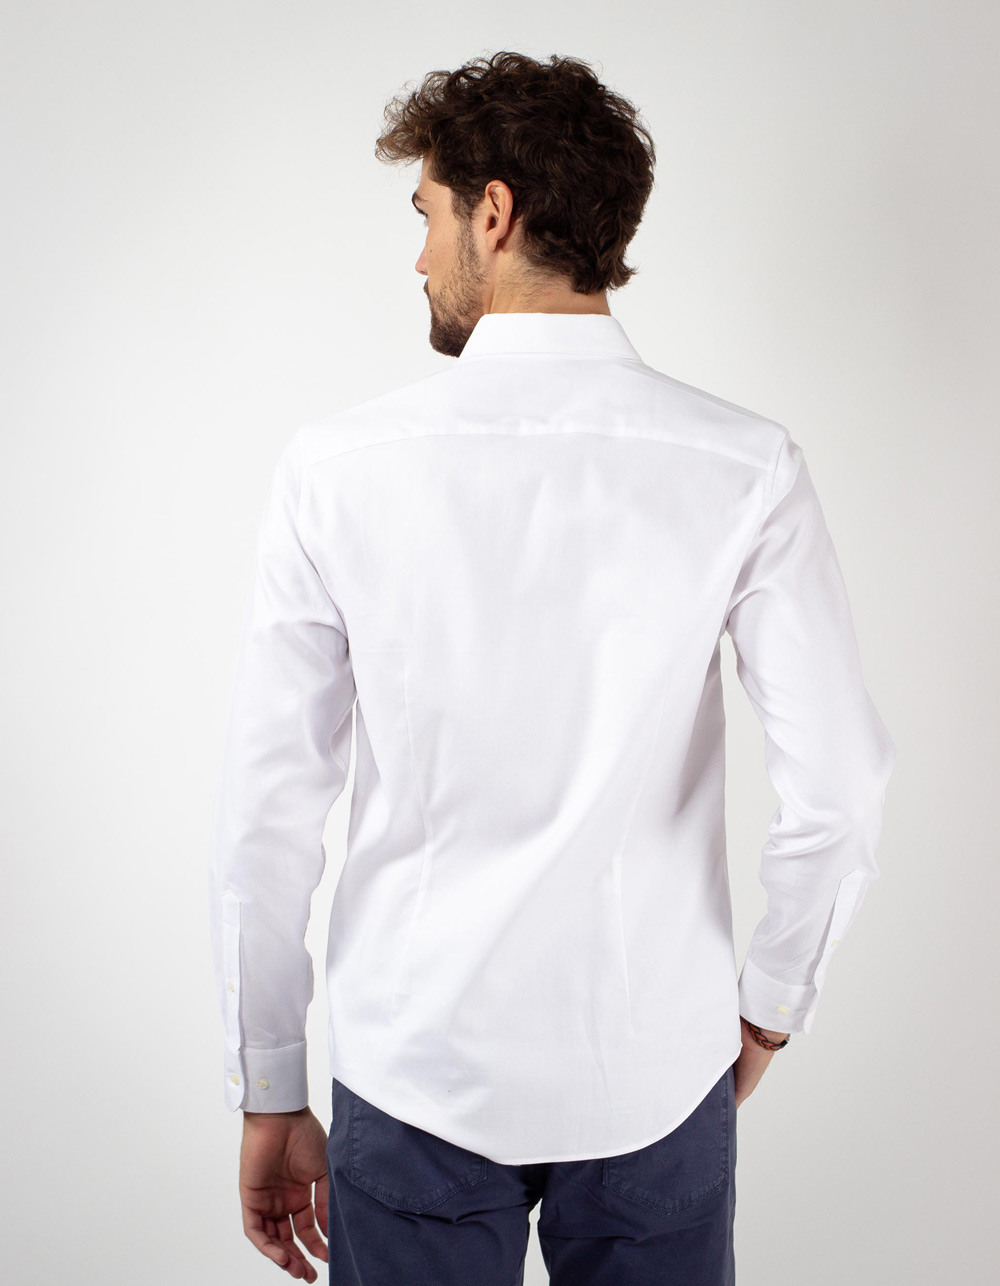 White plain shirt - Backside